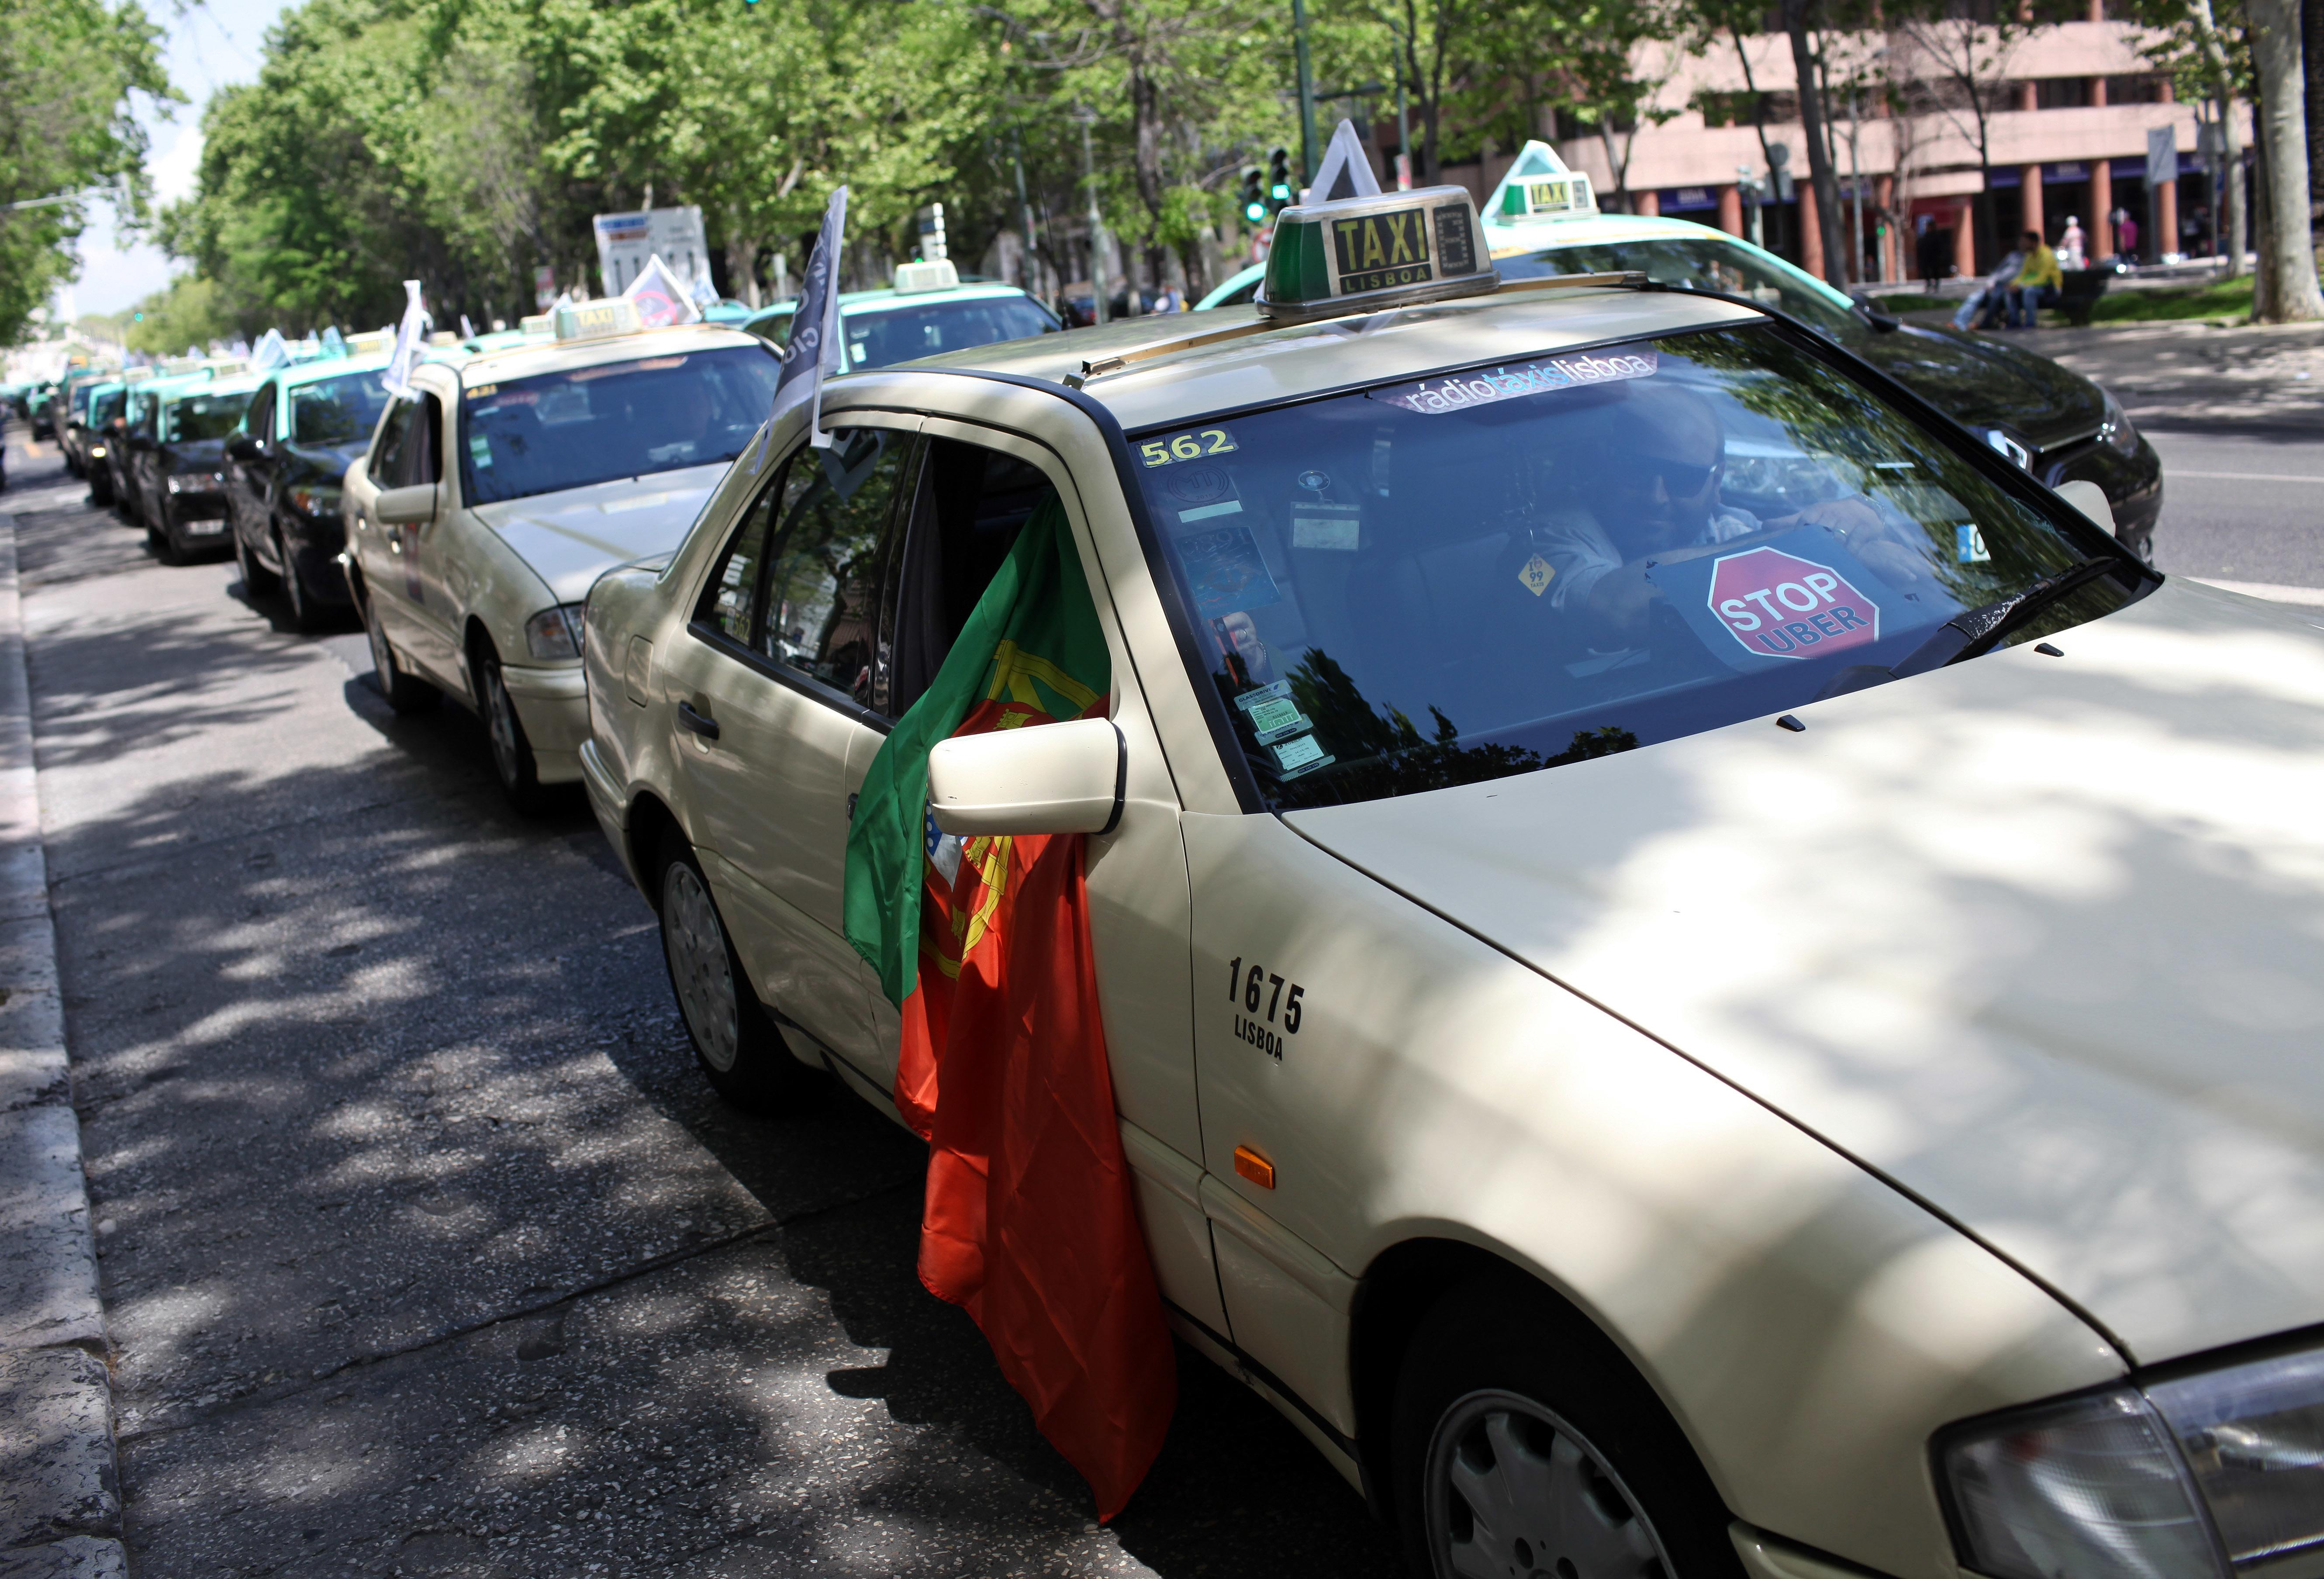 Taxis jam Lisbon traffic in latest European Uber protest